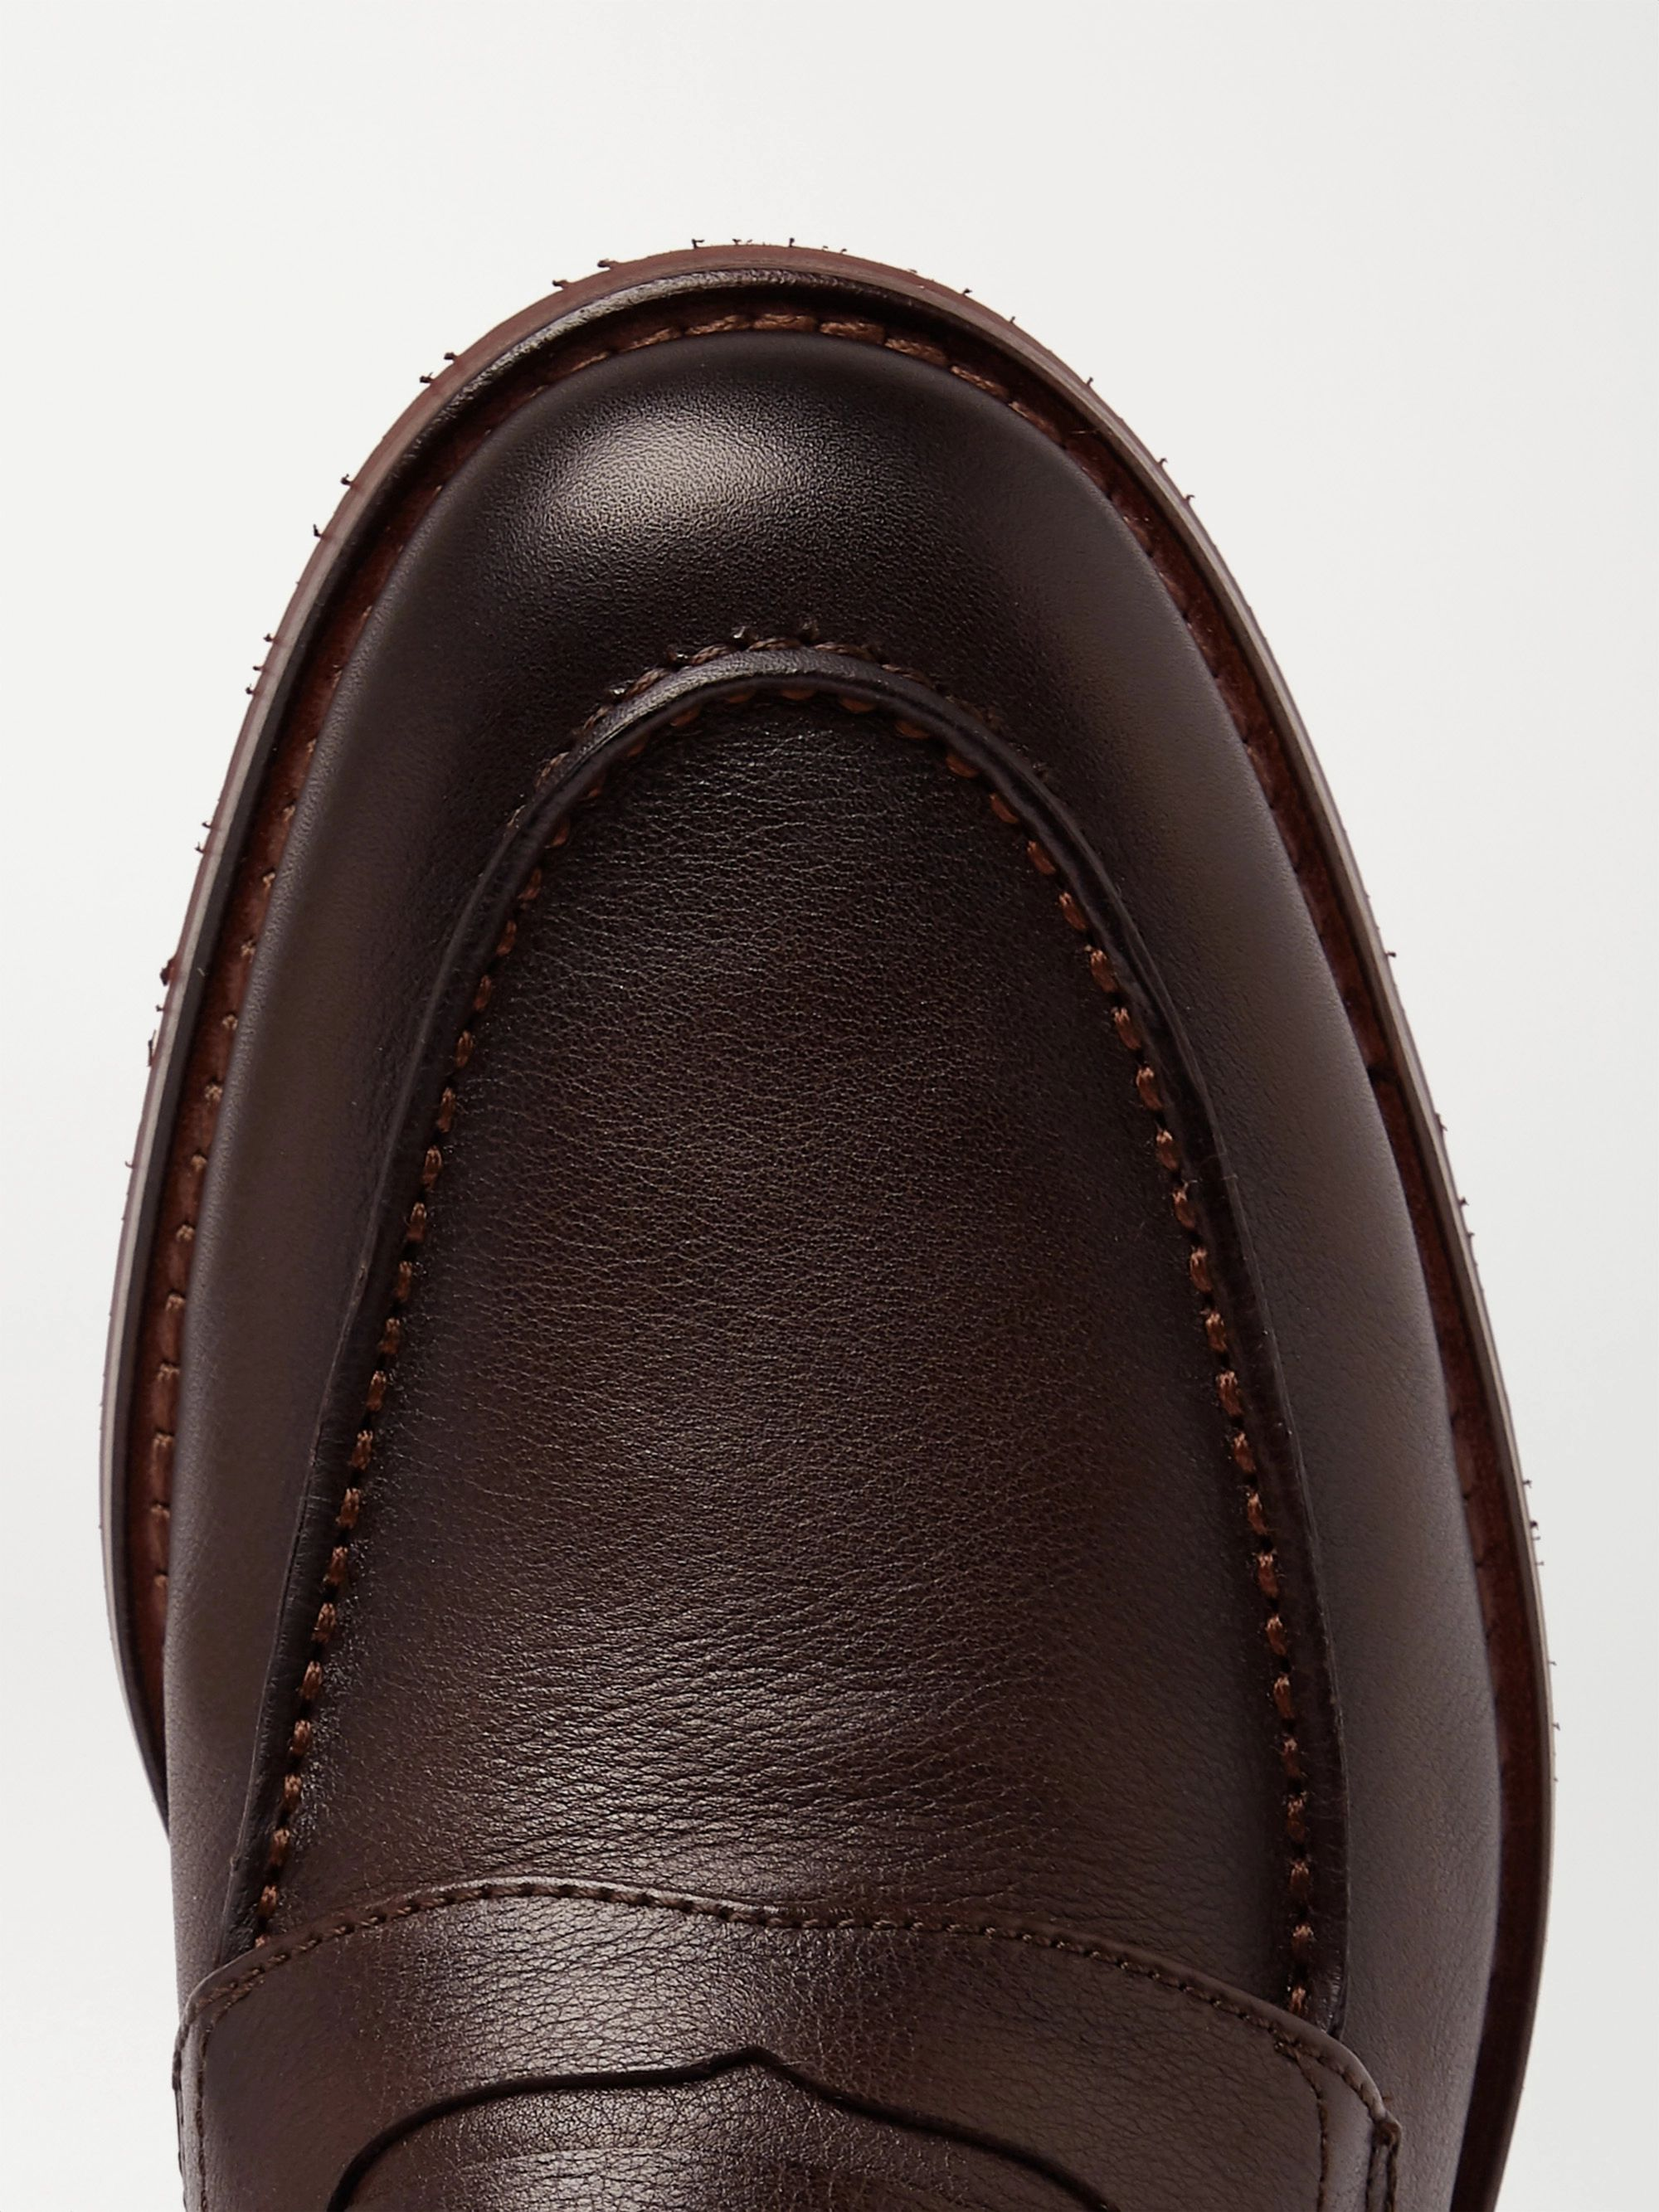 Brown City Life Full-grain Leather Loafers | Loro Piana